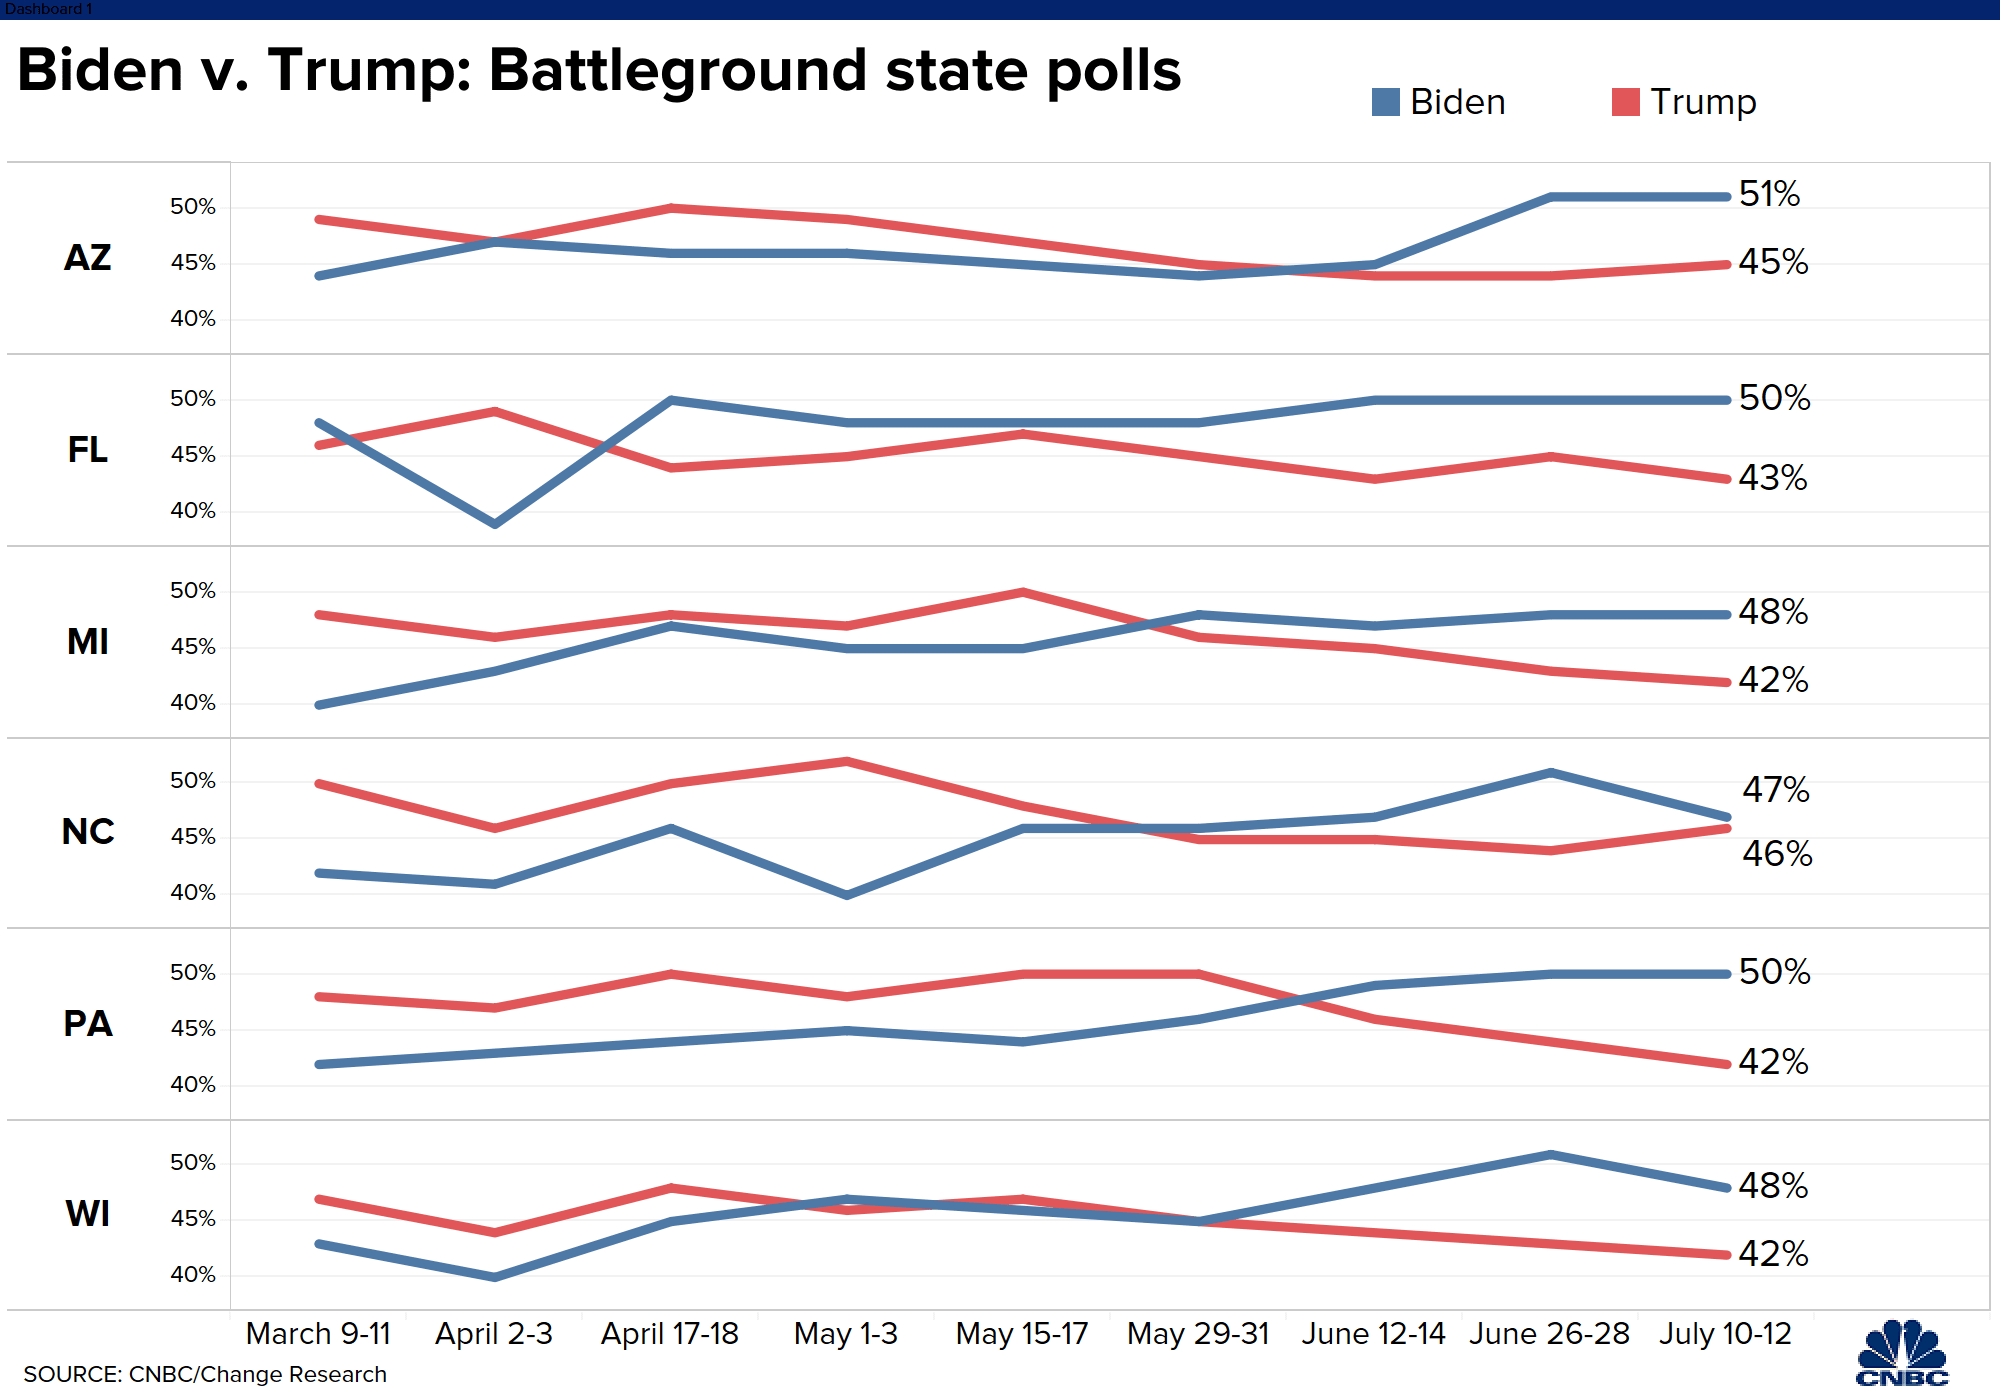 Donald Trump vs. Joe Biden swing state polls